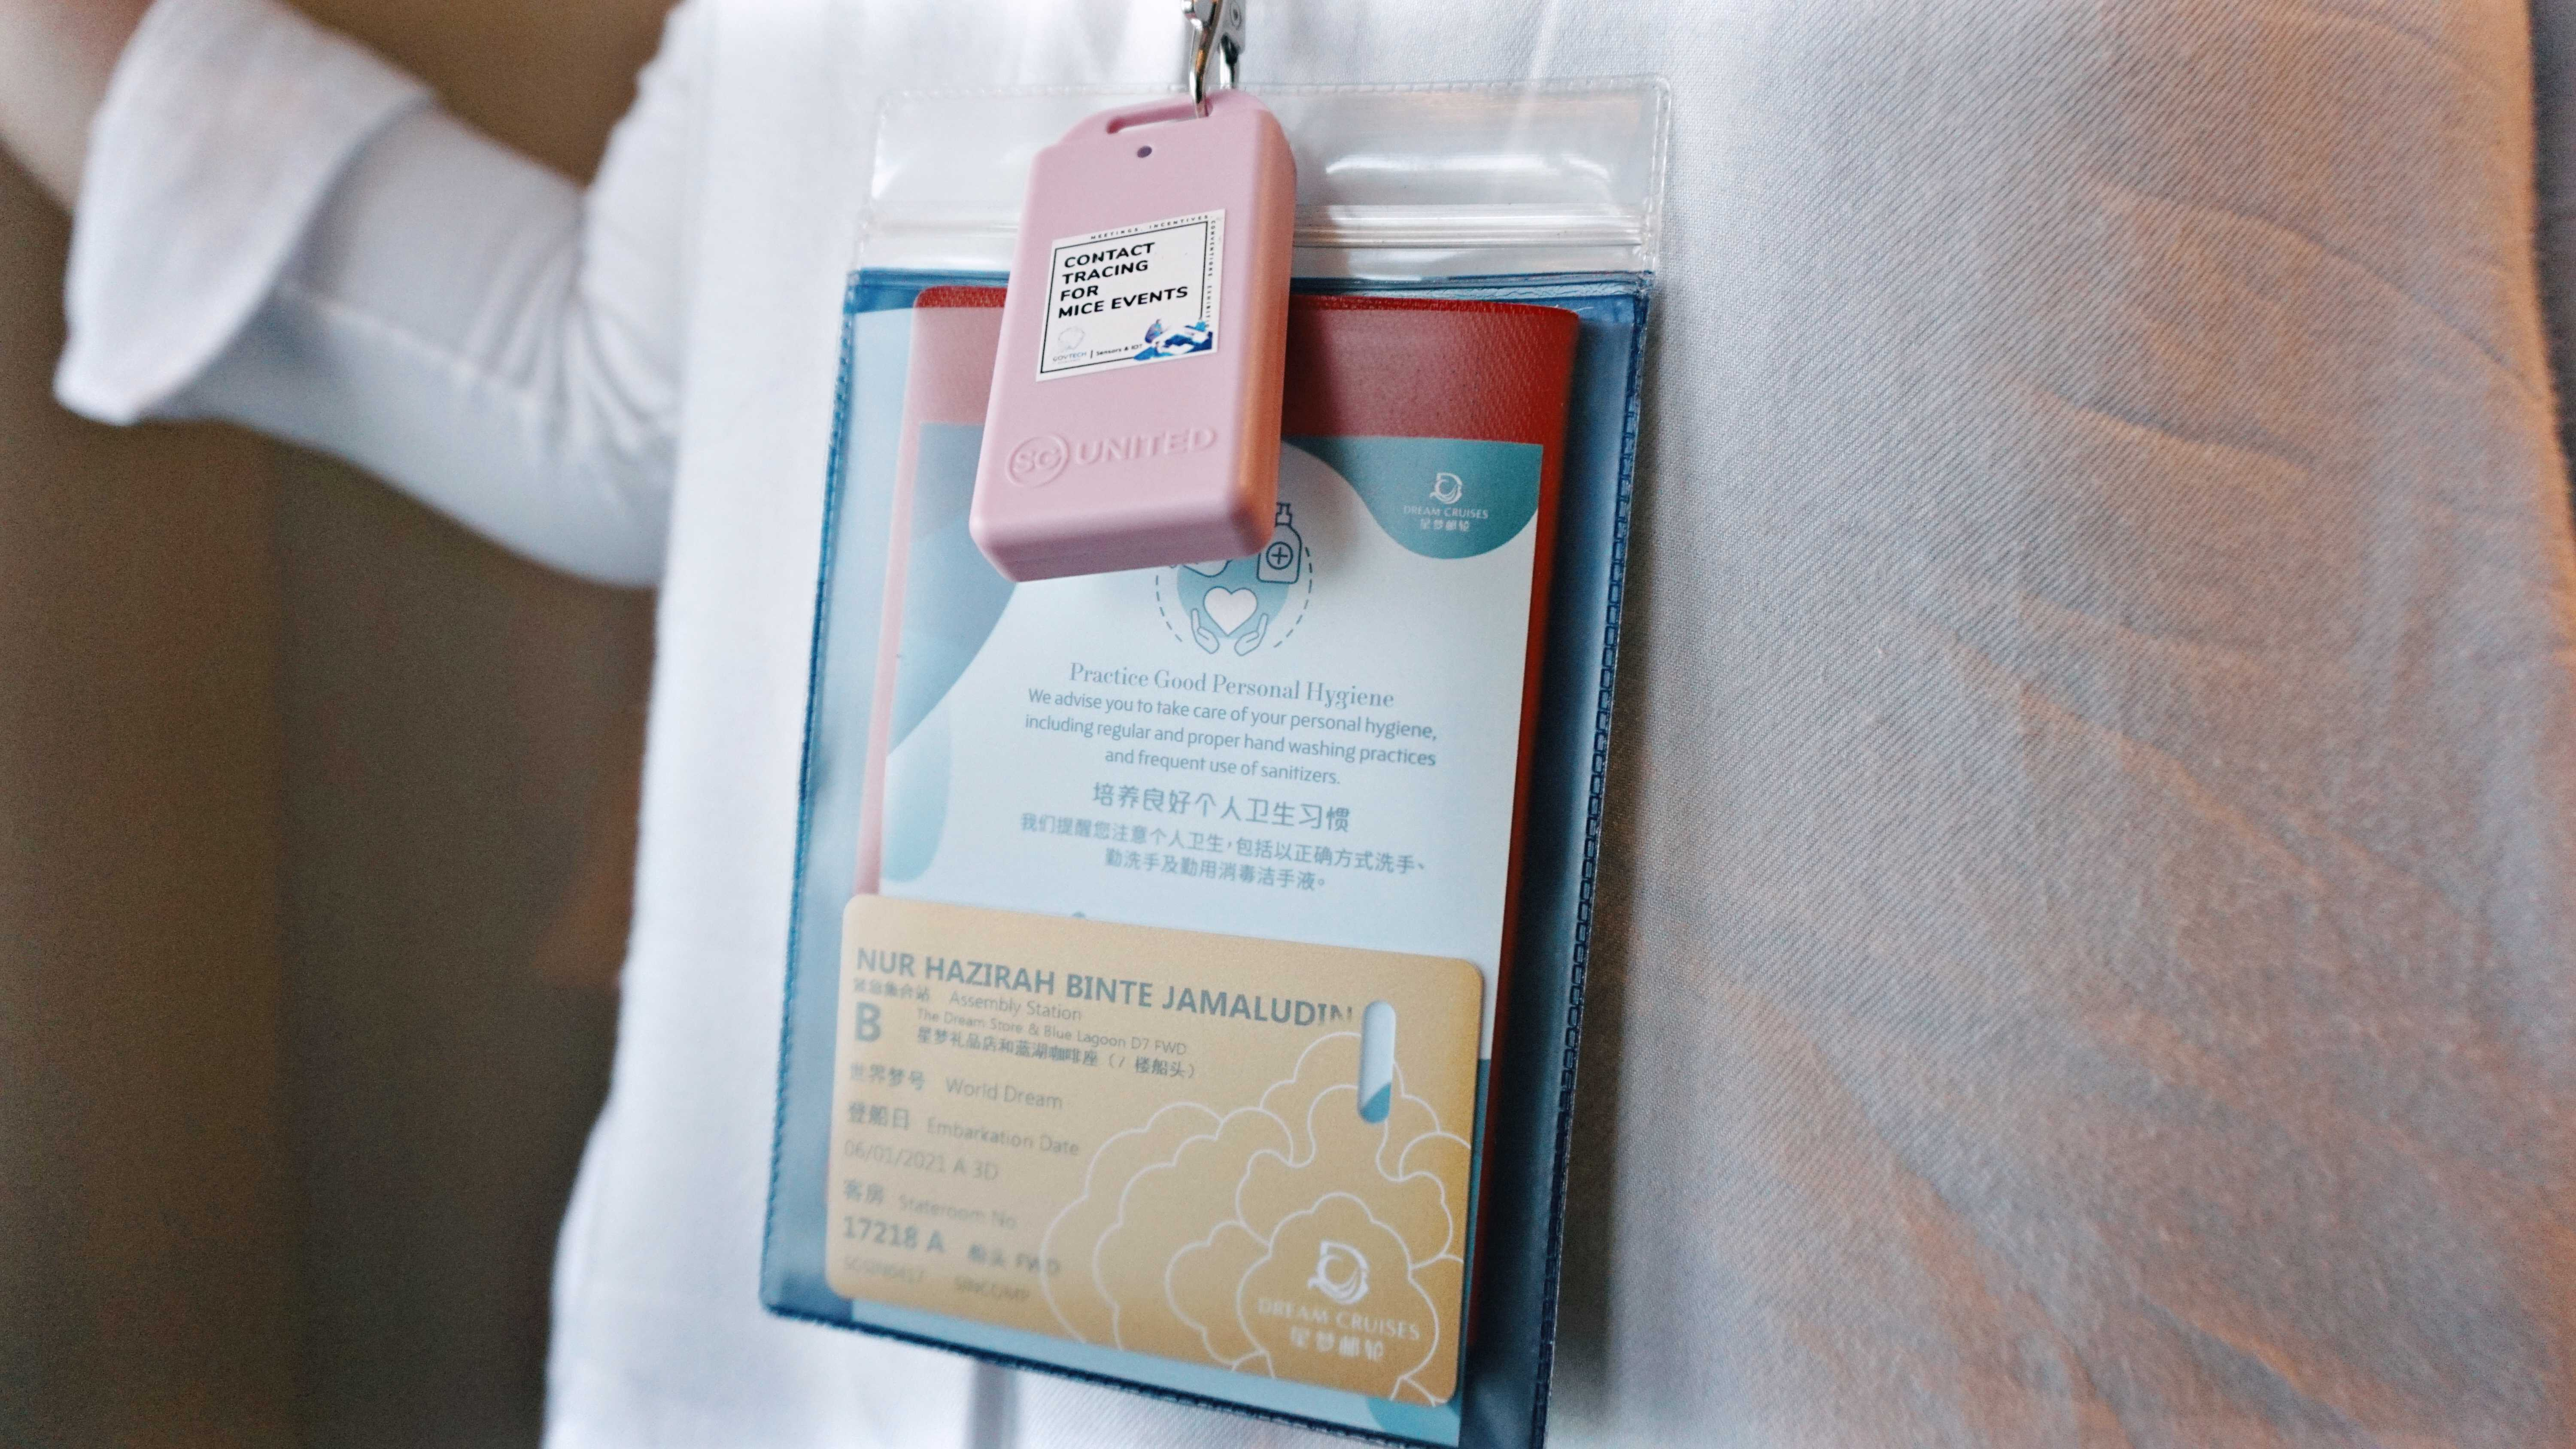 Dream Cruises World Dream Room access card, lanyard and MICE device